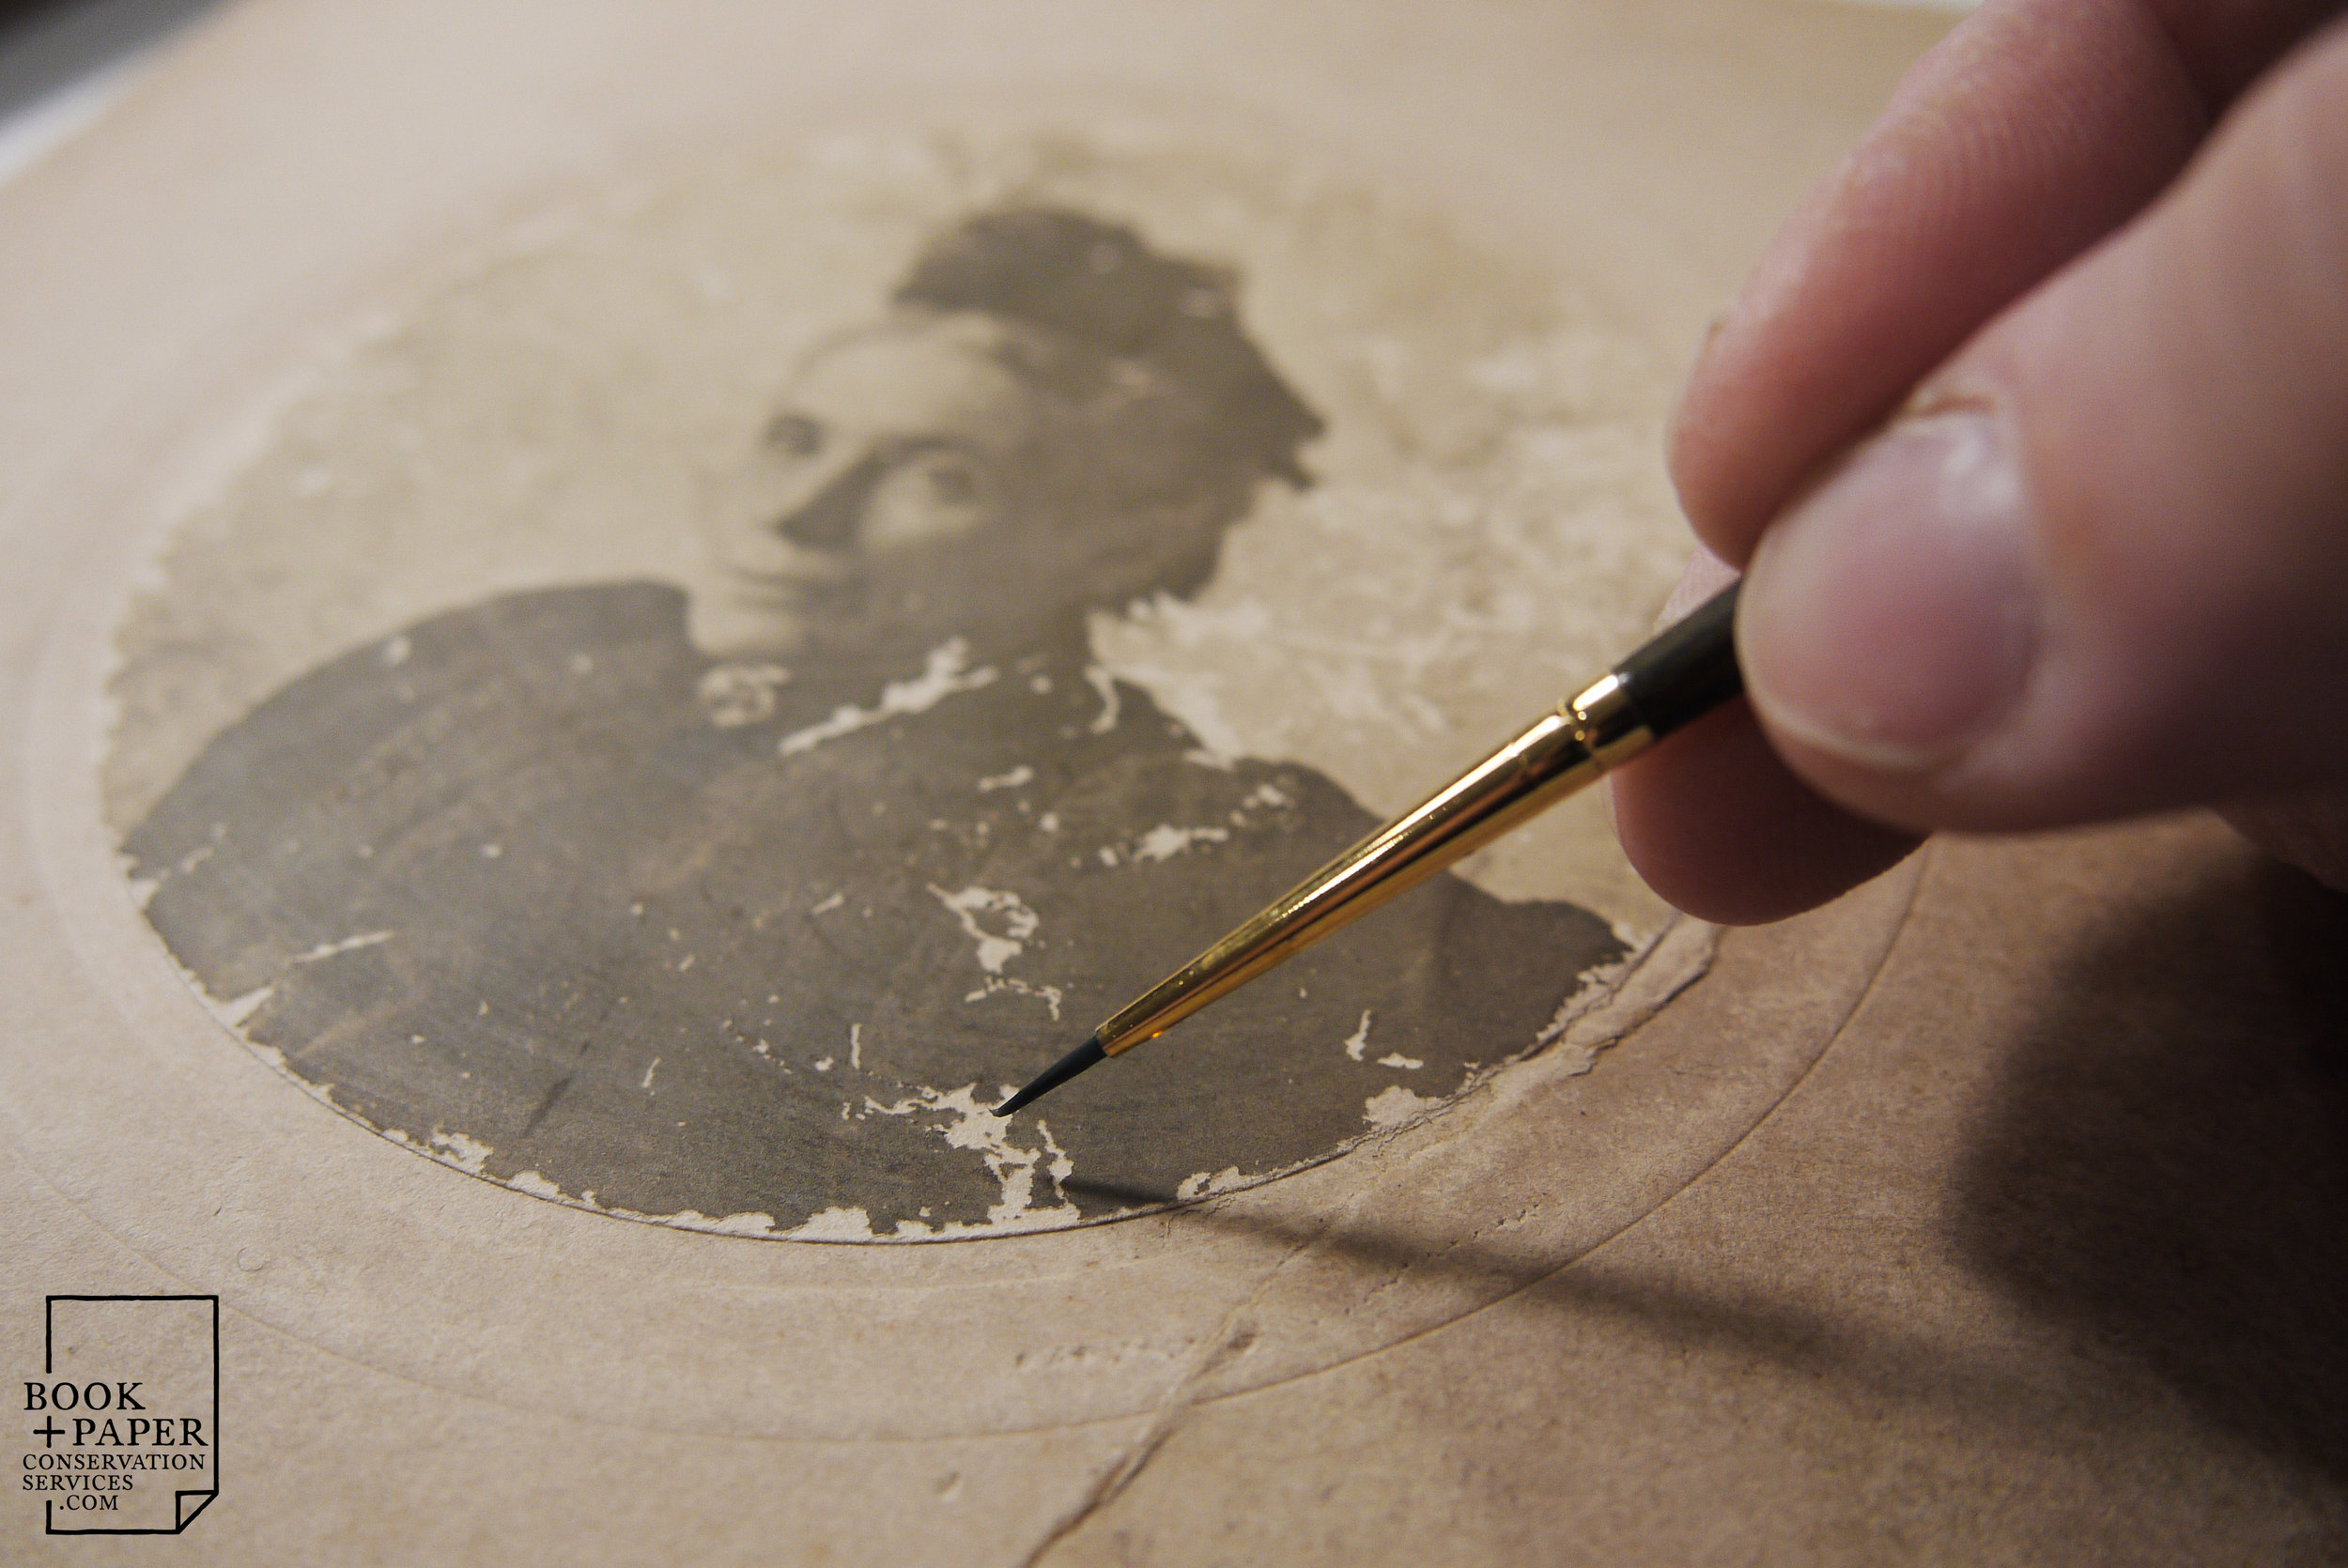 Inpainting losses to the emulsion layer of a 19th century photograph.